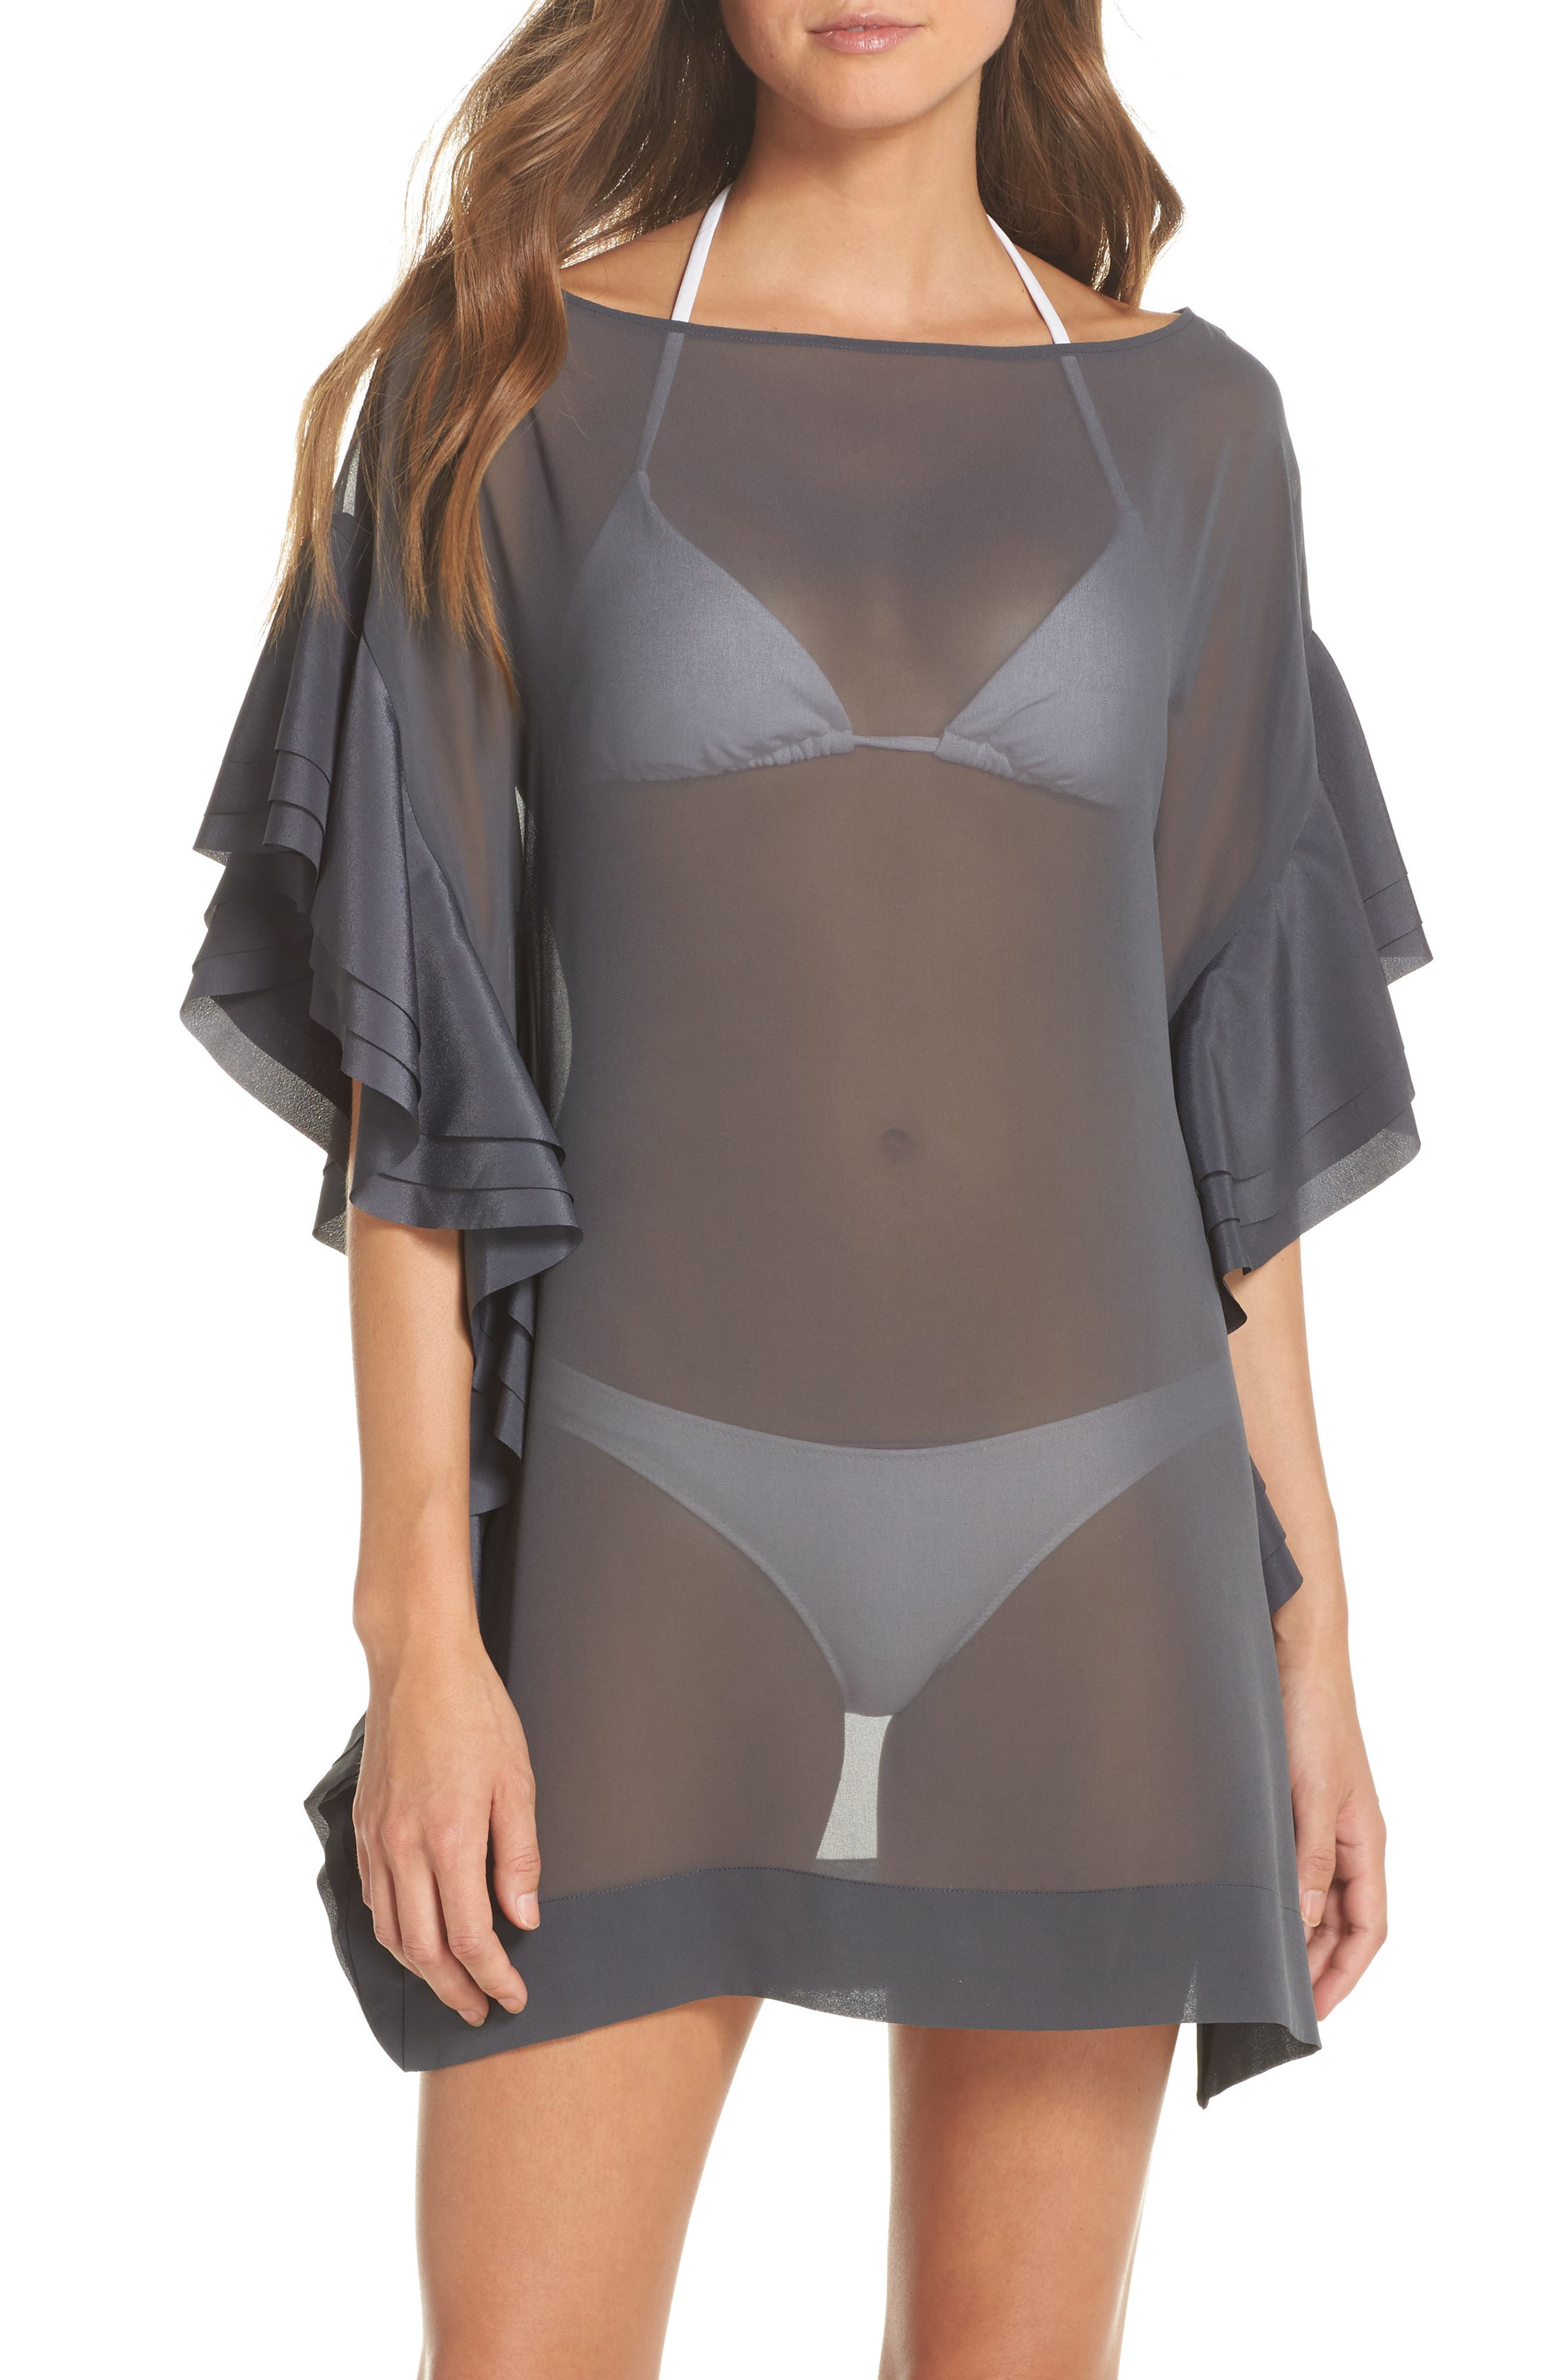 Ruffle Square Cover-Up Dress,                         Main,                         color, 030